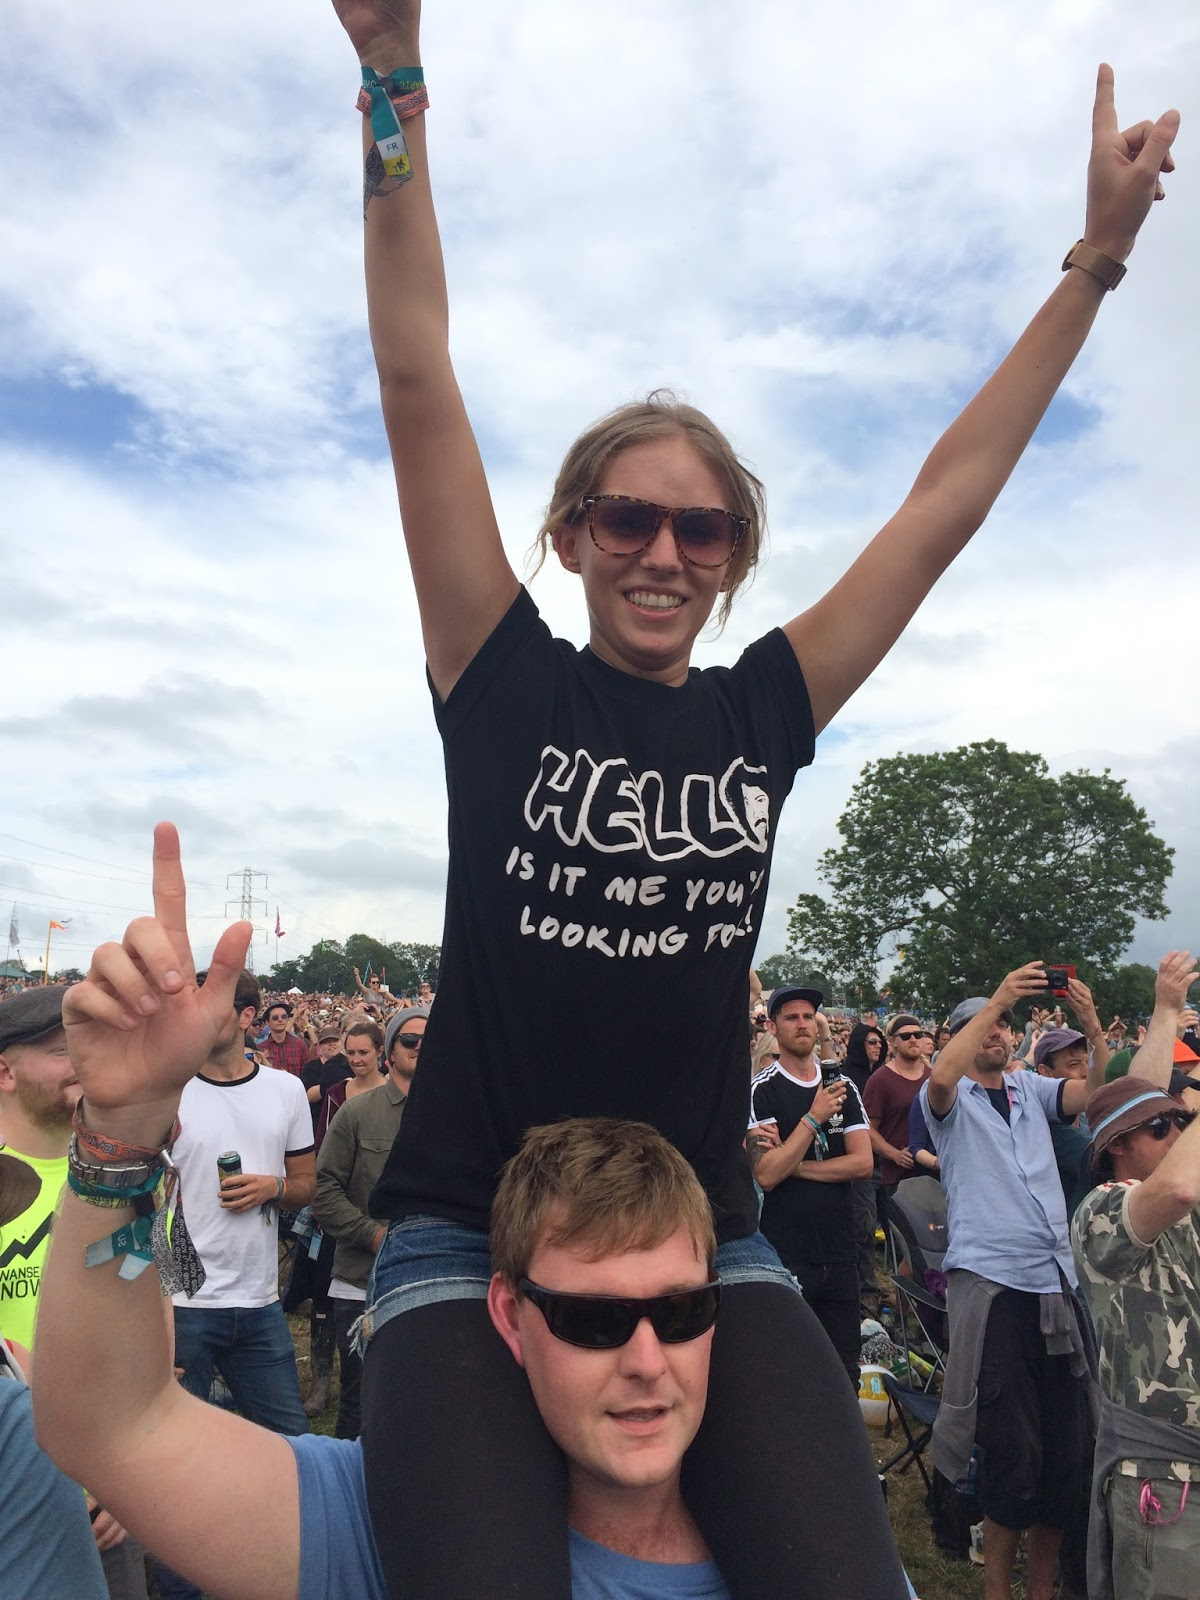 Rachel Emily wearing a Lionel Ritchie T-shirt dancing on shoulders at the Pyramid Stage